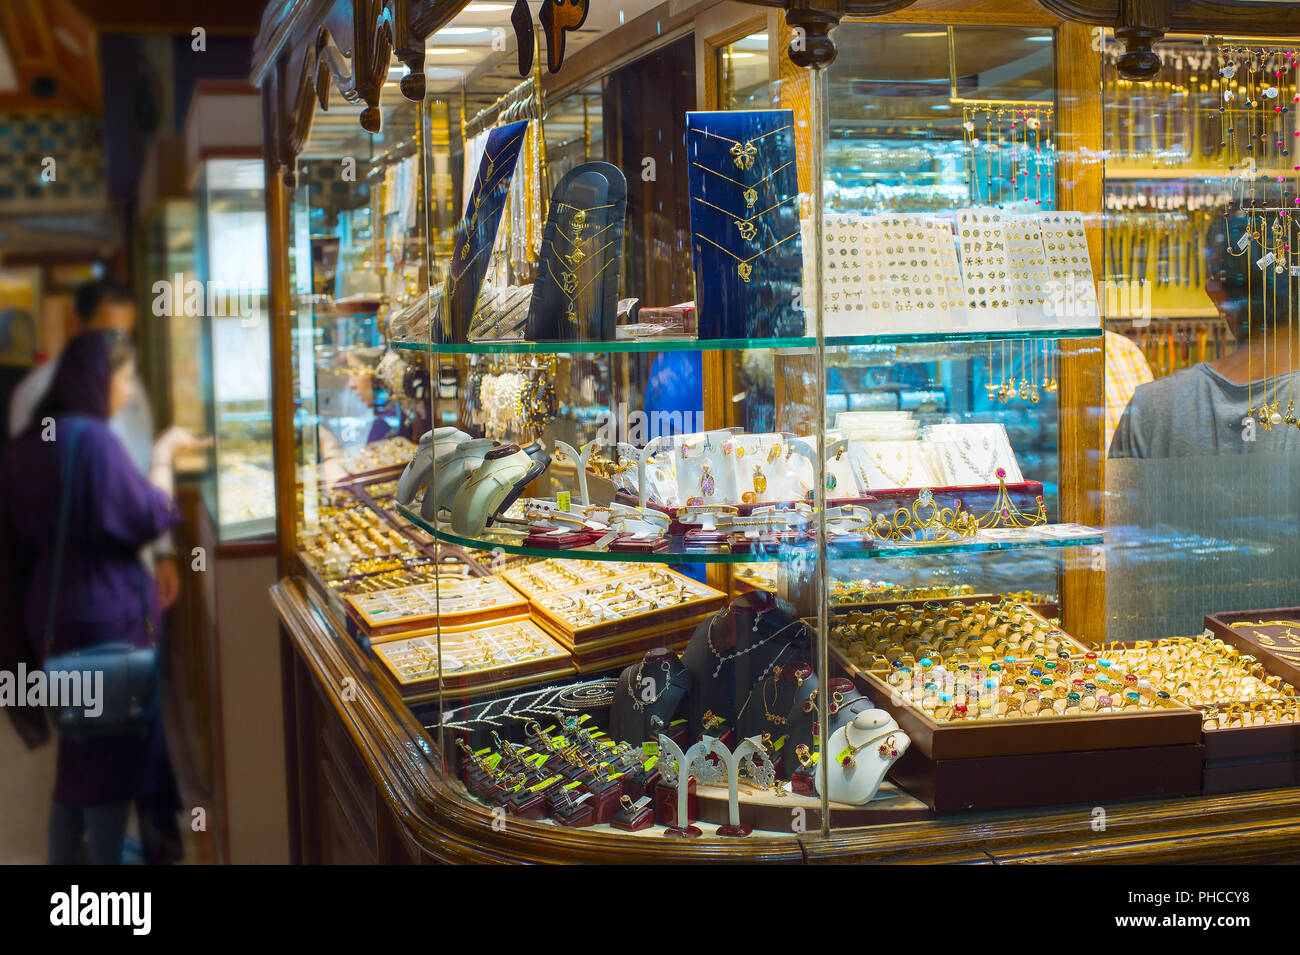 Schmuck Shops Schmuck Shops Teheran Grand Markt Stockfoto Bild 217247164 Alamy